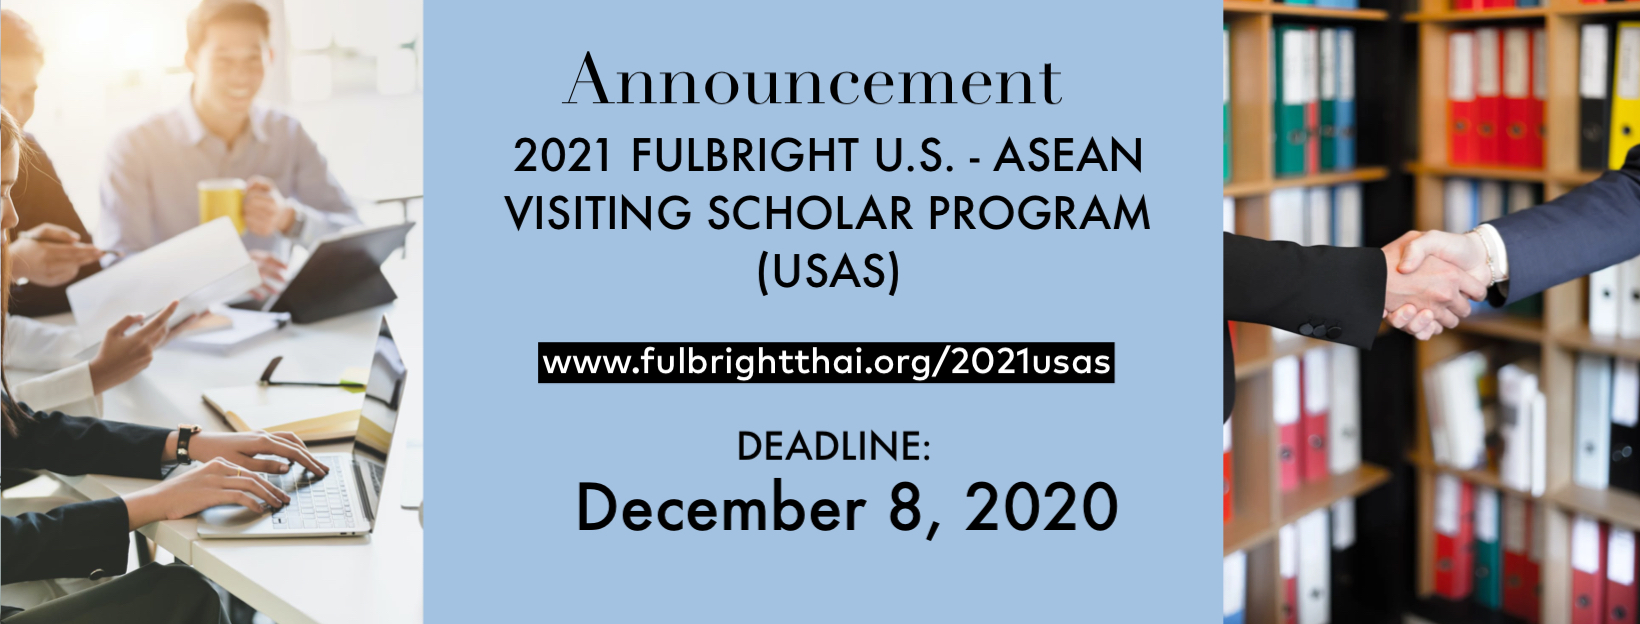 ทุนวิจัย Fulbright U.S.-ASEAN Visiting Scholar Program (USAS) 2564